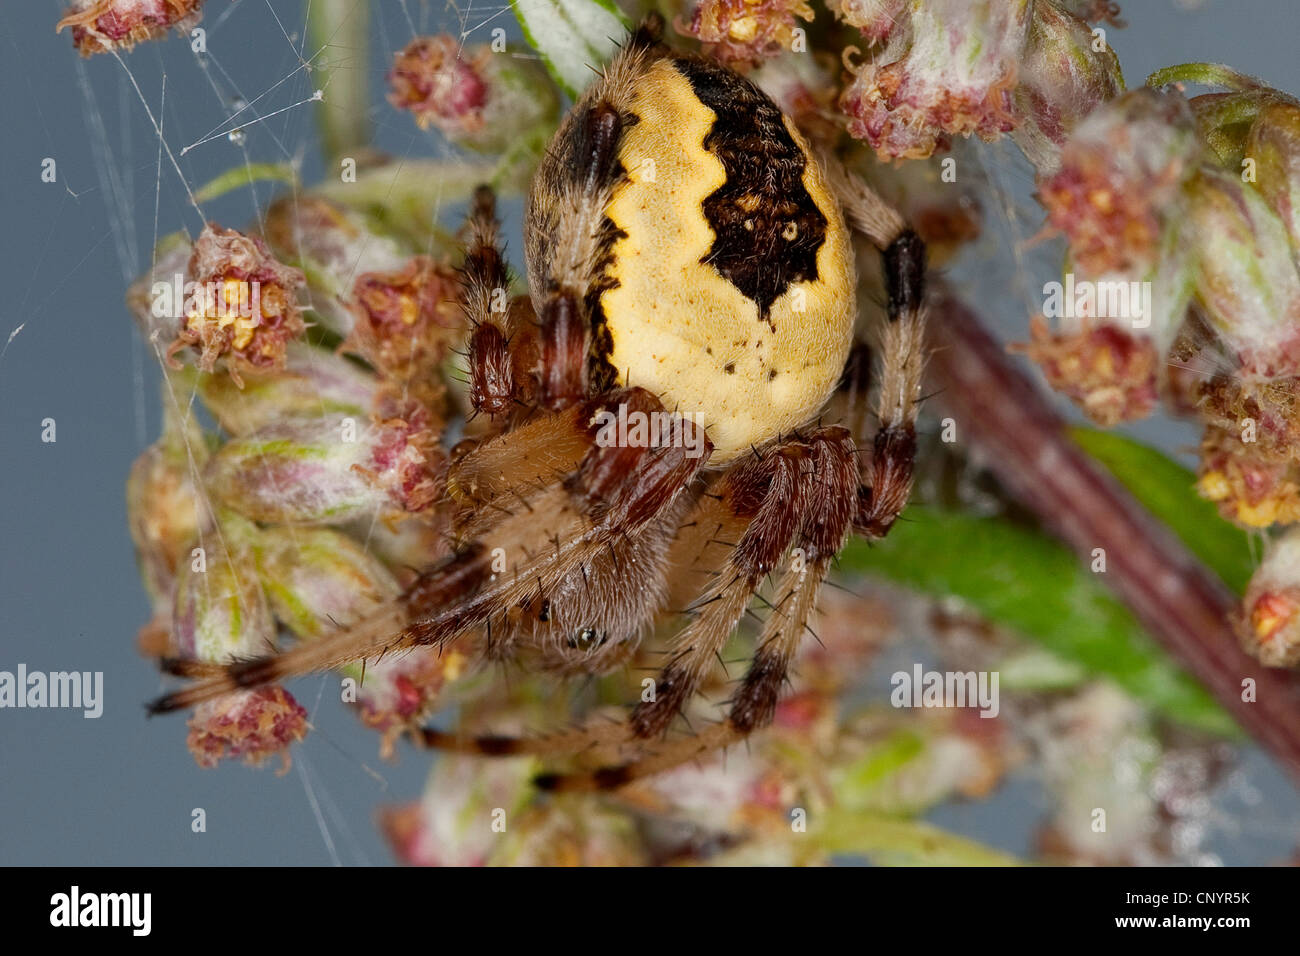 marbled orbweaver, marbled spider (Araneus marmoreus f. pyramidata, Araneus marmoreus pyramidata), on a grass ear, - Stock Image